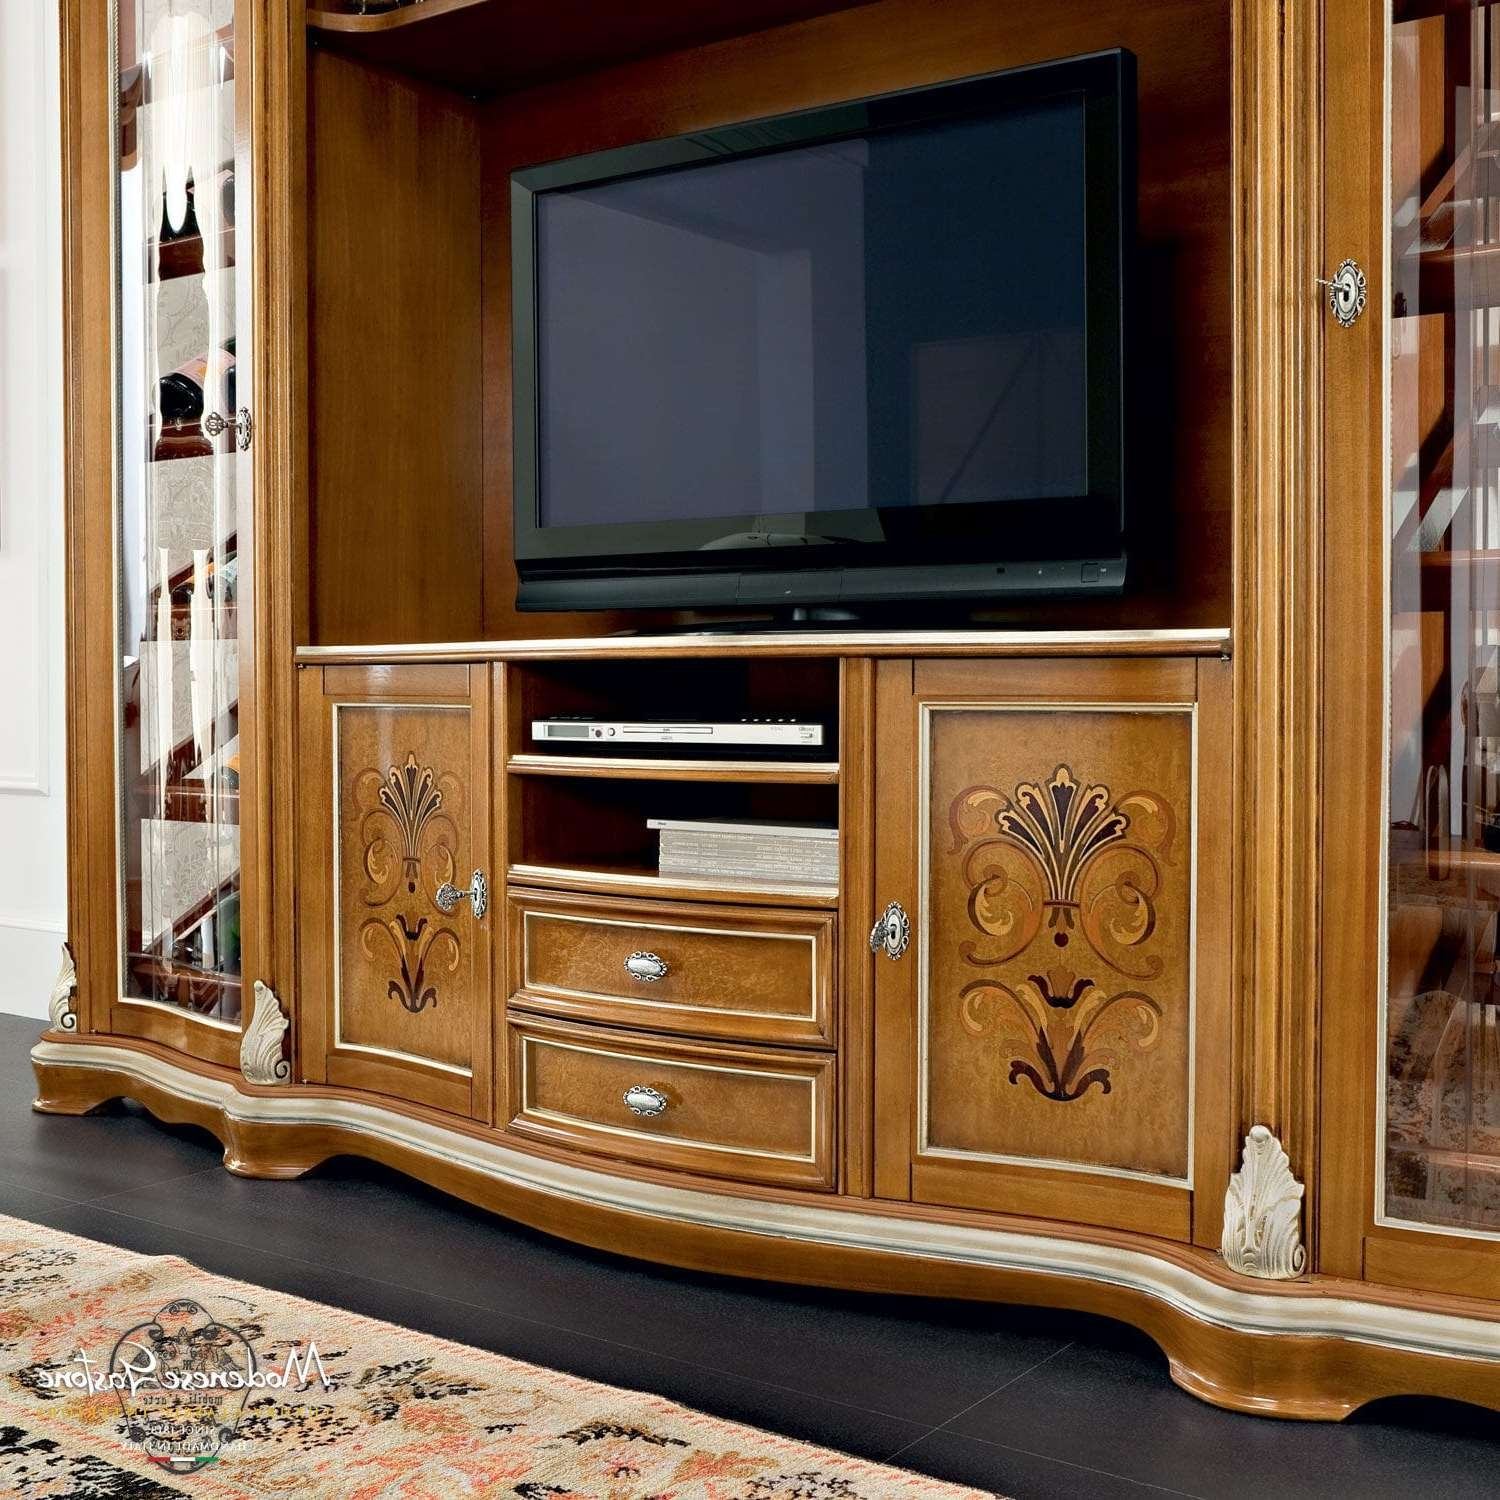 Classic Tv Cabinet / Solid Wood – Bella Vita – Modenese Gastone Within Wooden Tv Cabinets (View 3 of 20)